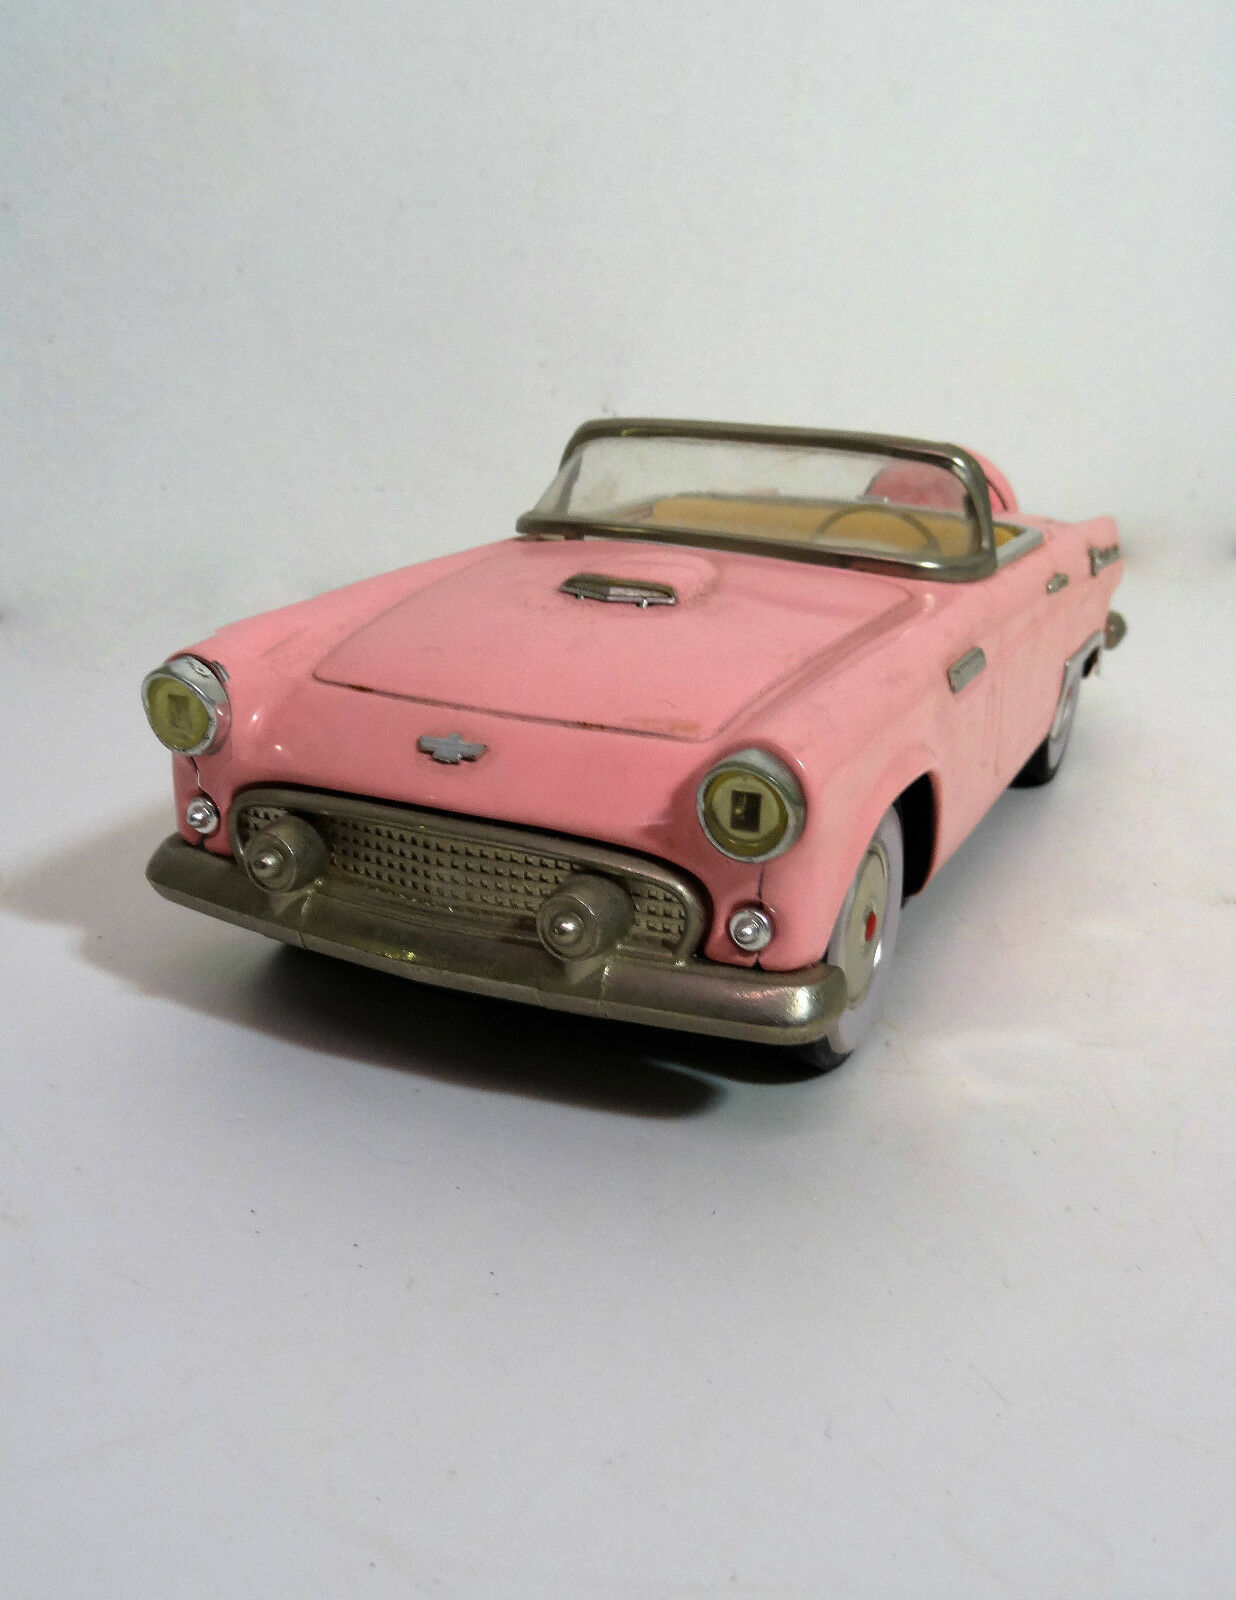 1956 ford thunderbird Voiture à friction japanese car toy